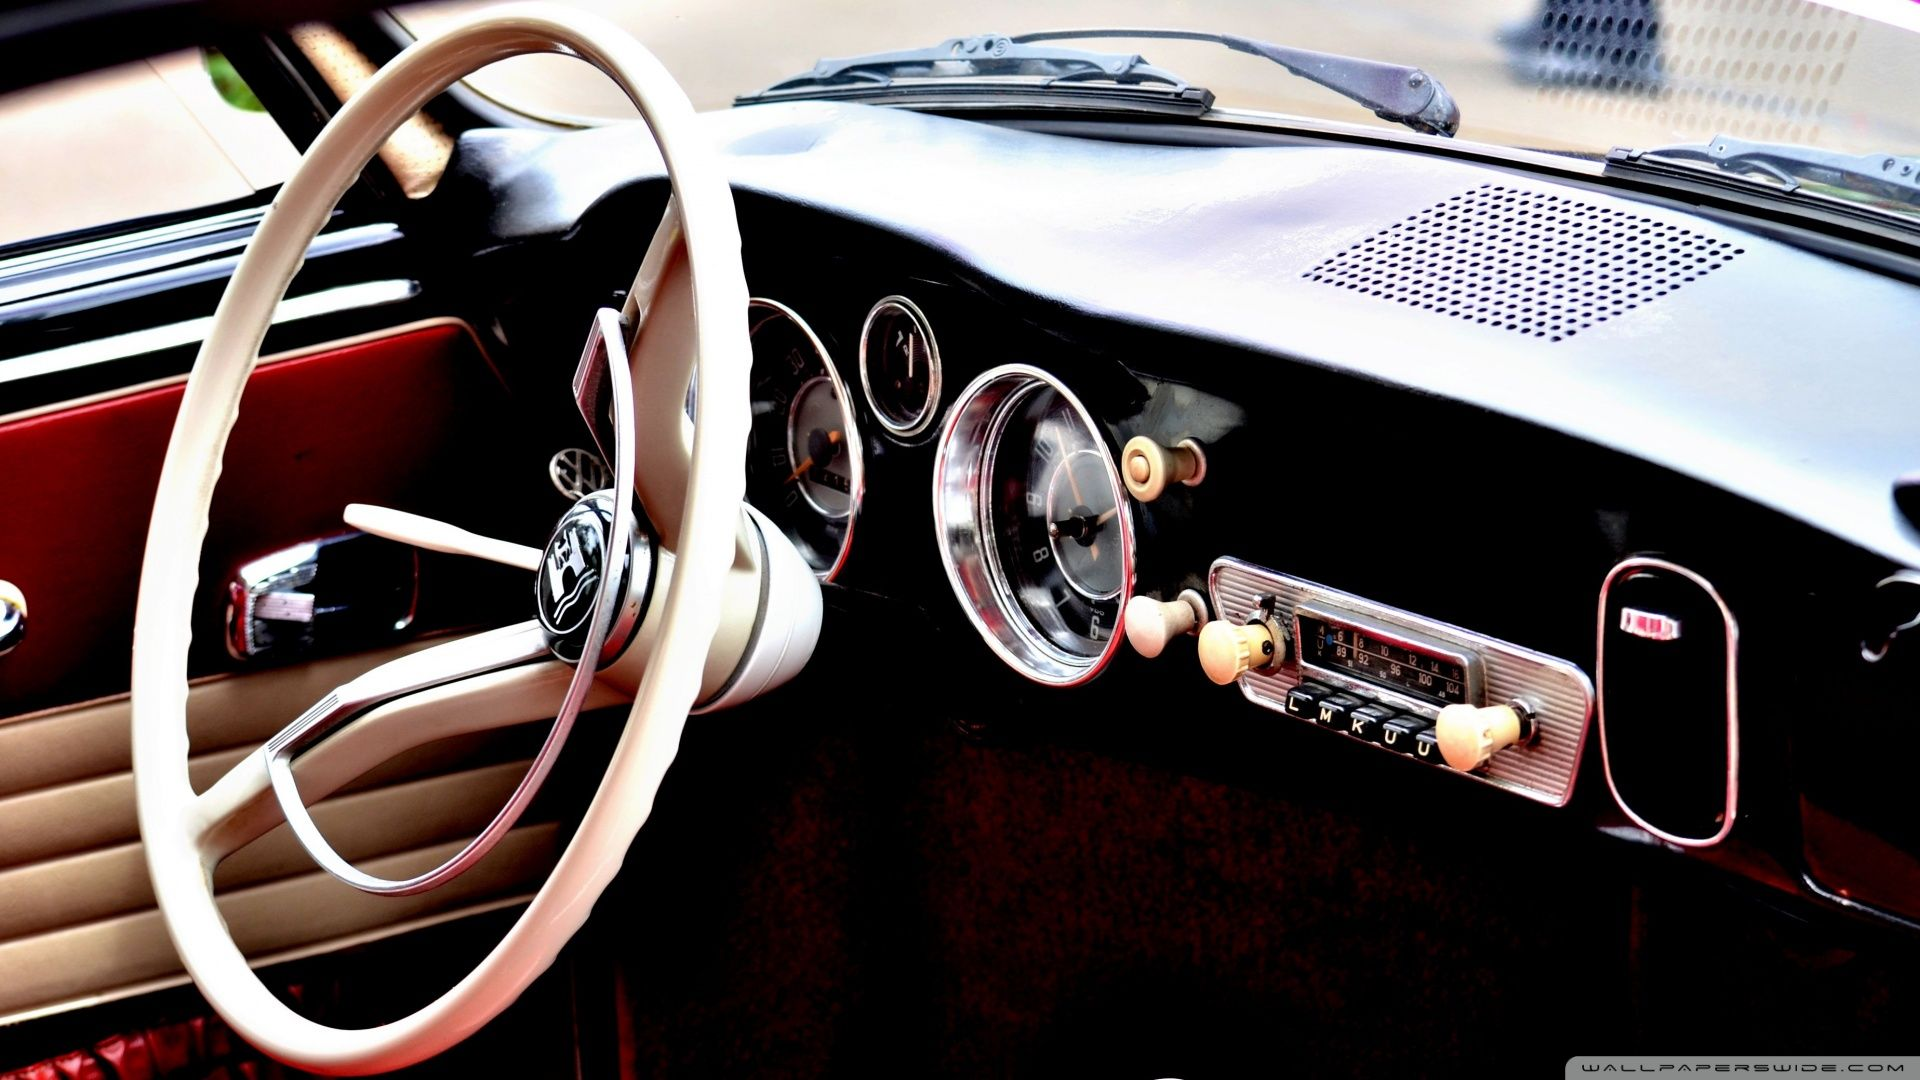 Classic Car Interior wallpaper | 1920x1080 | #16497